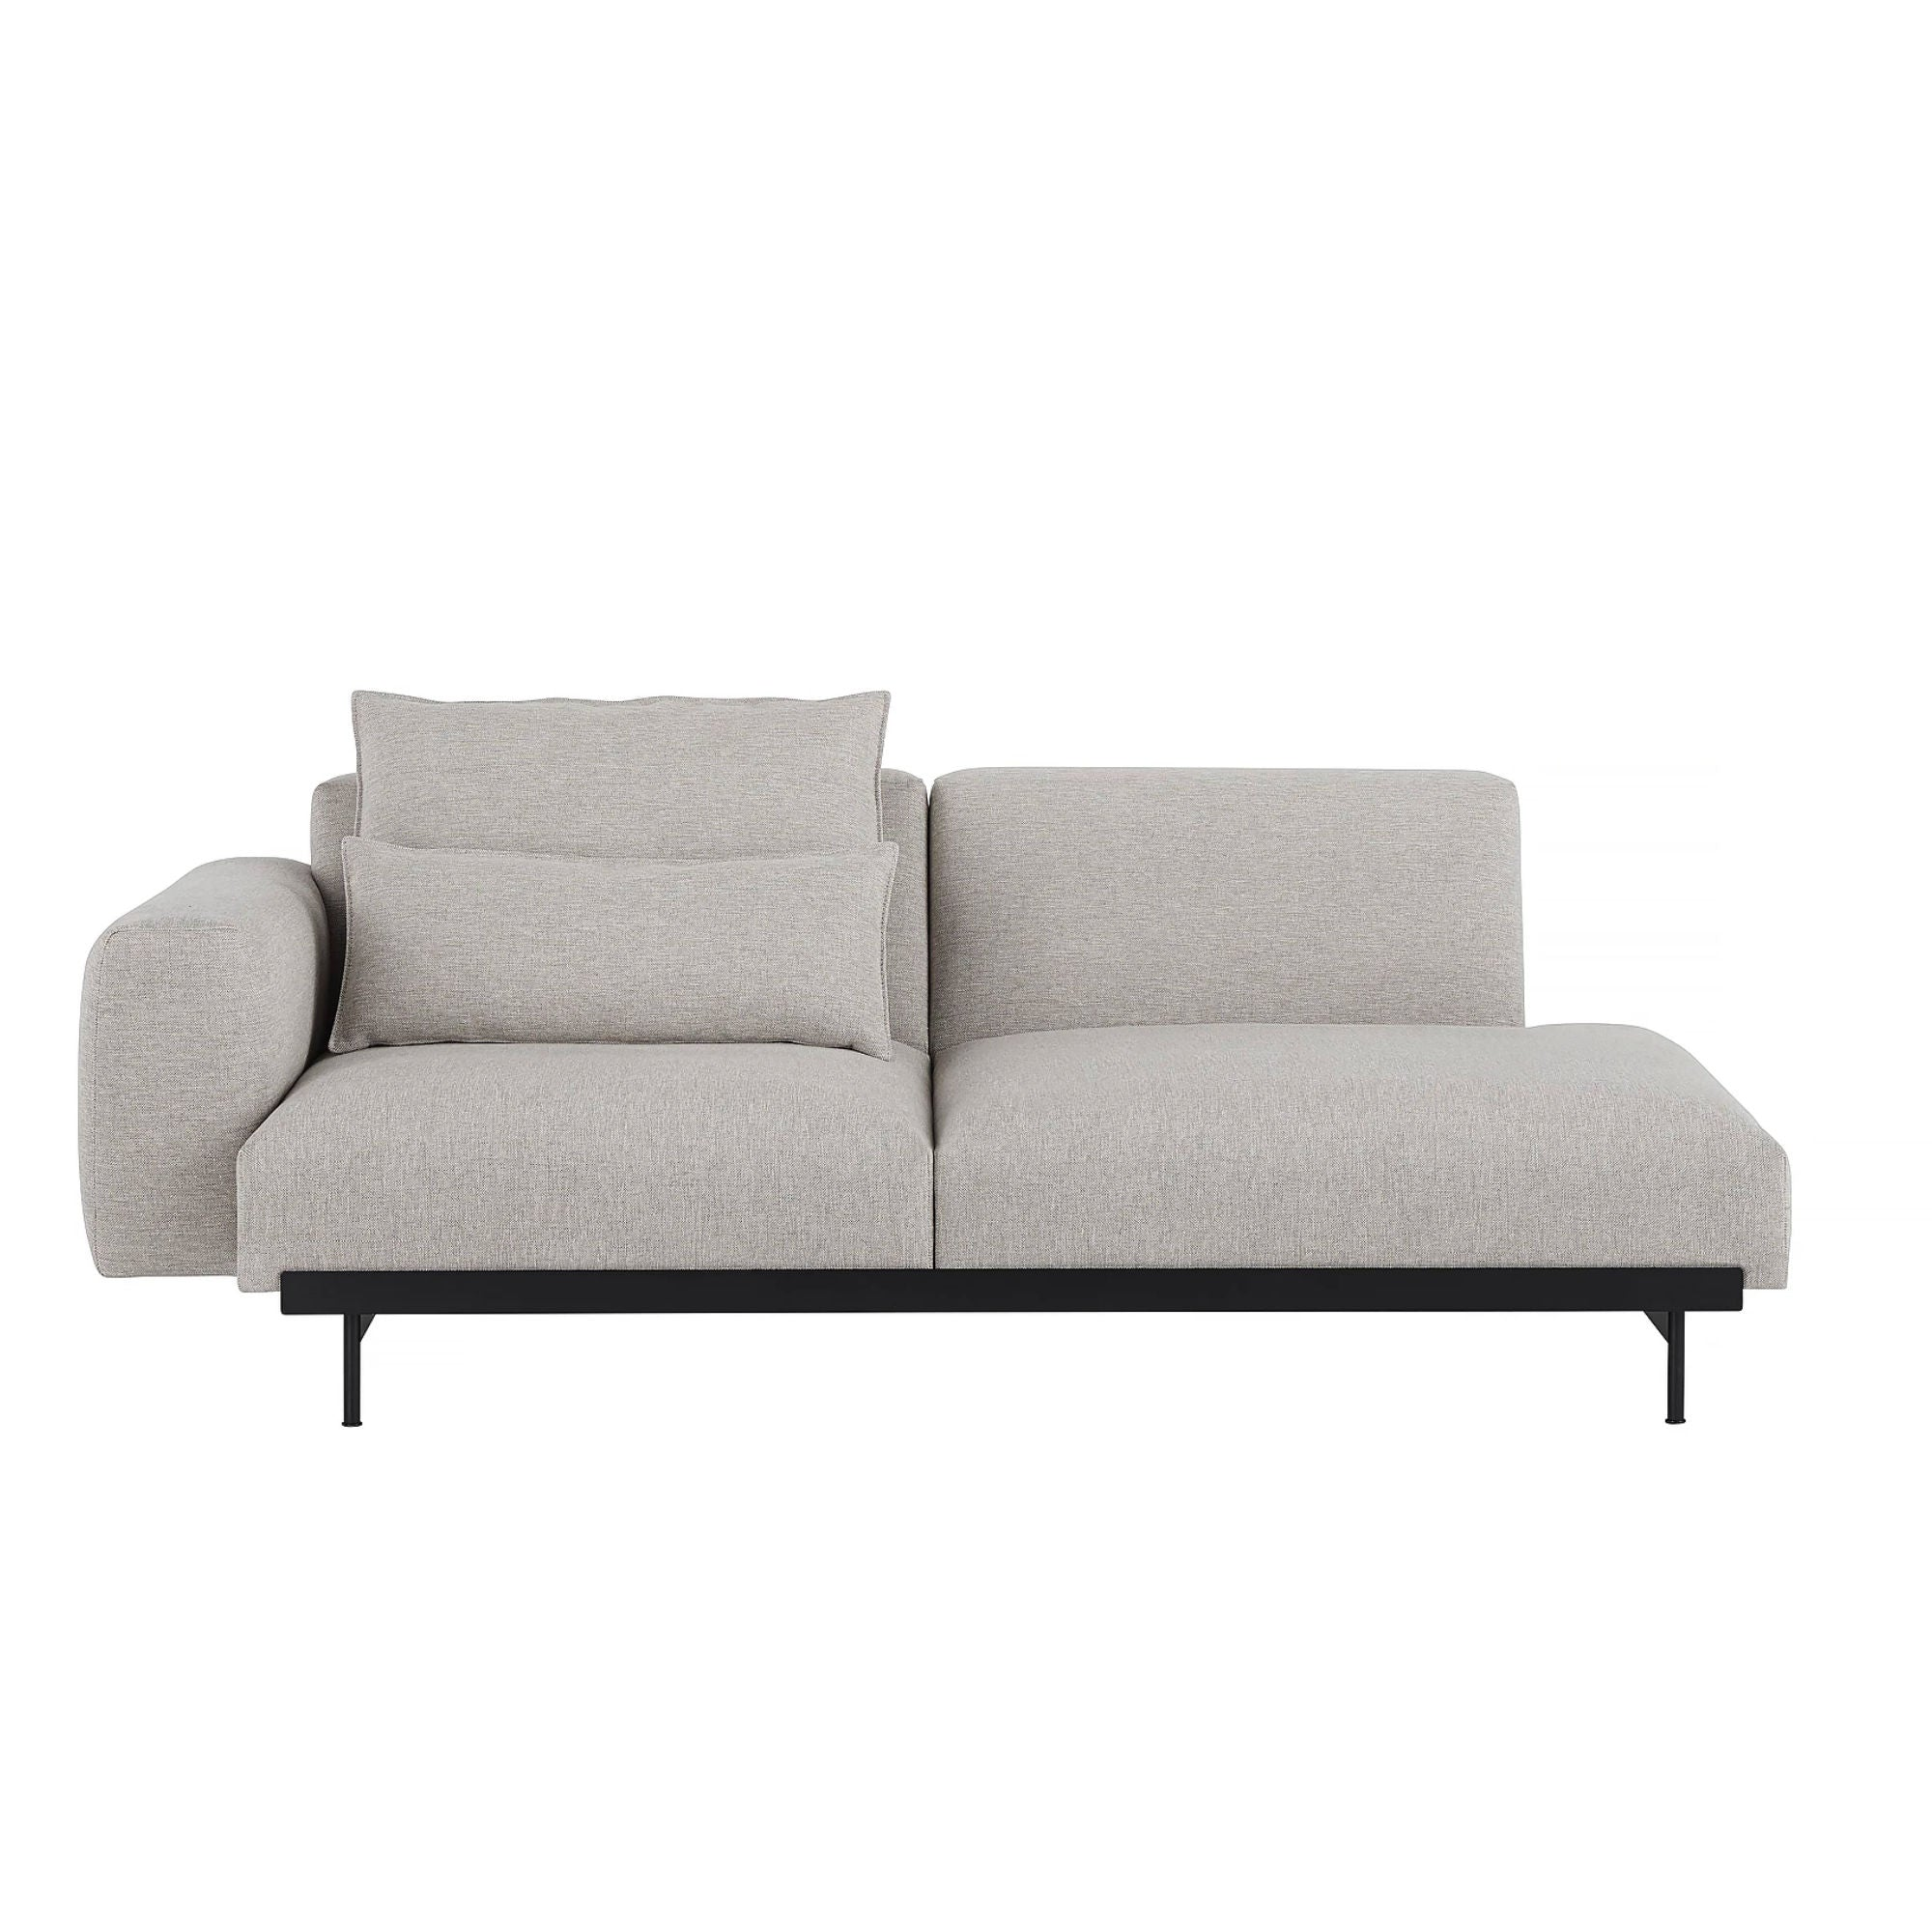 Muuto In Situ Modular Sofa 2-Seater Configuration 2/3 , Clay 12